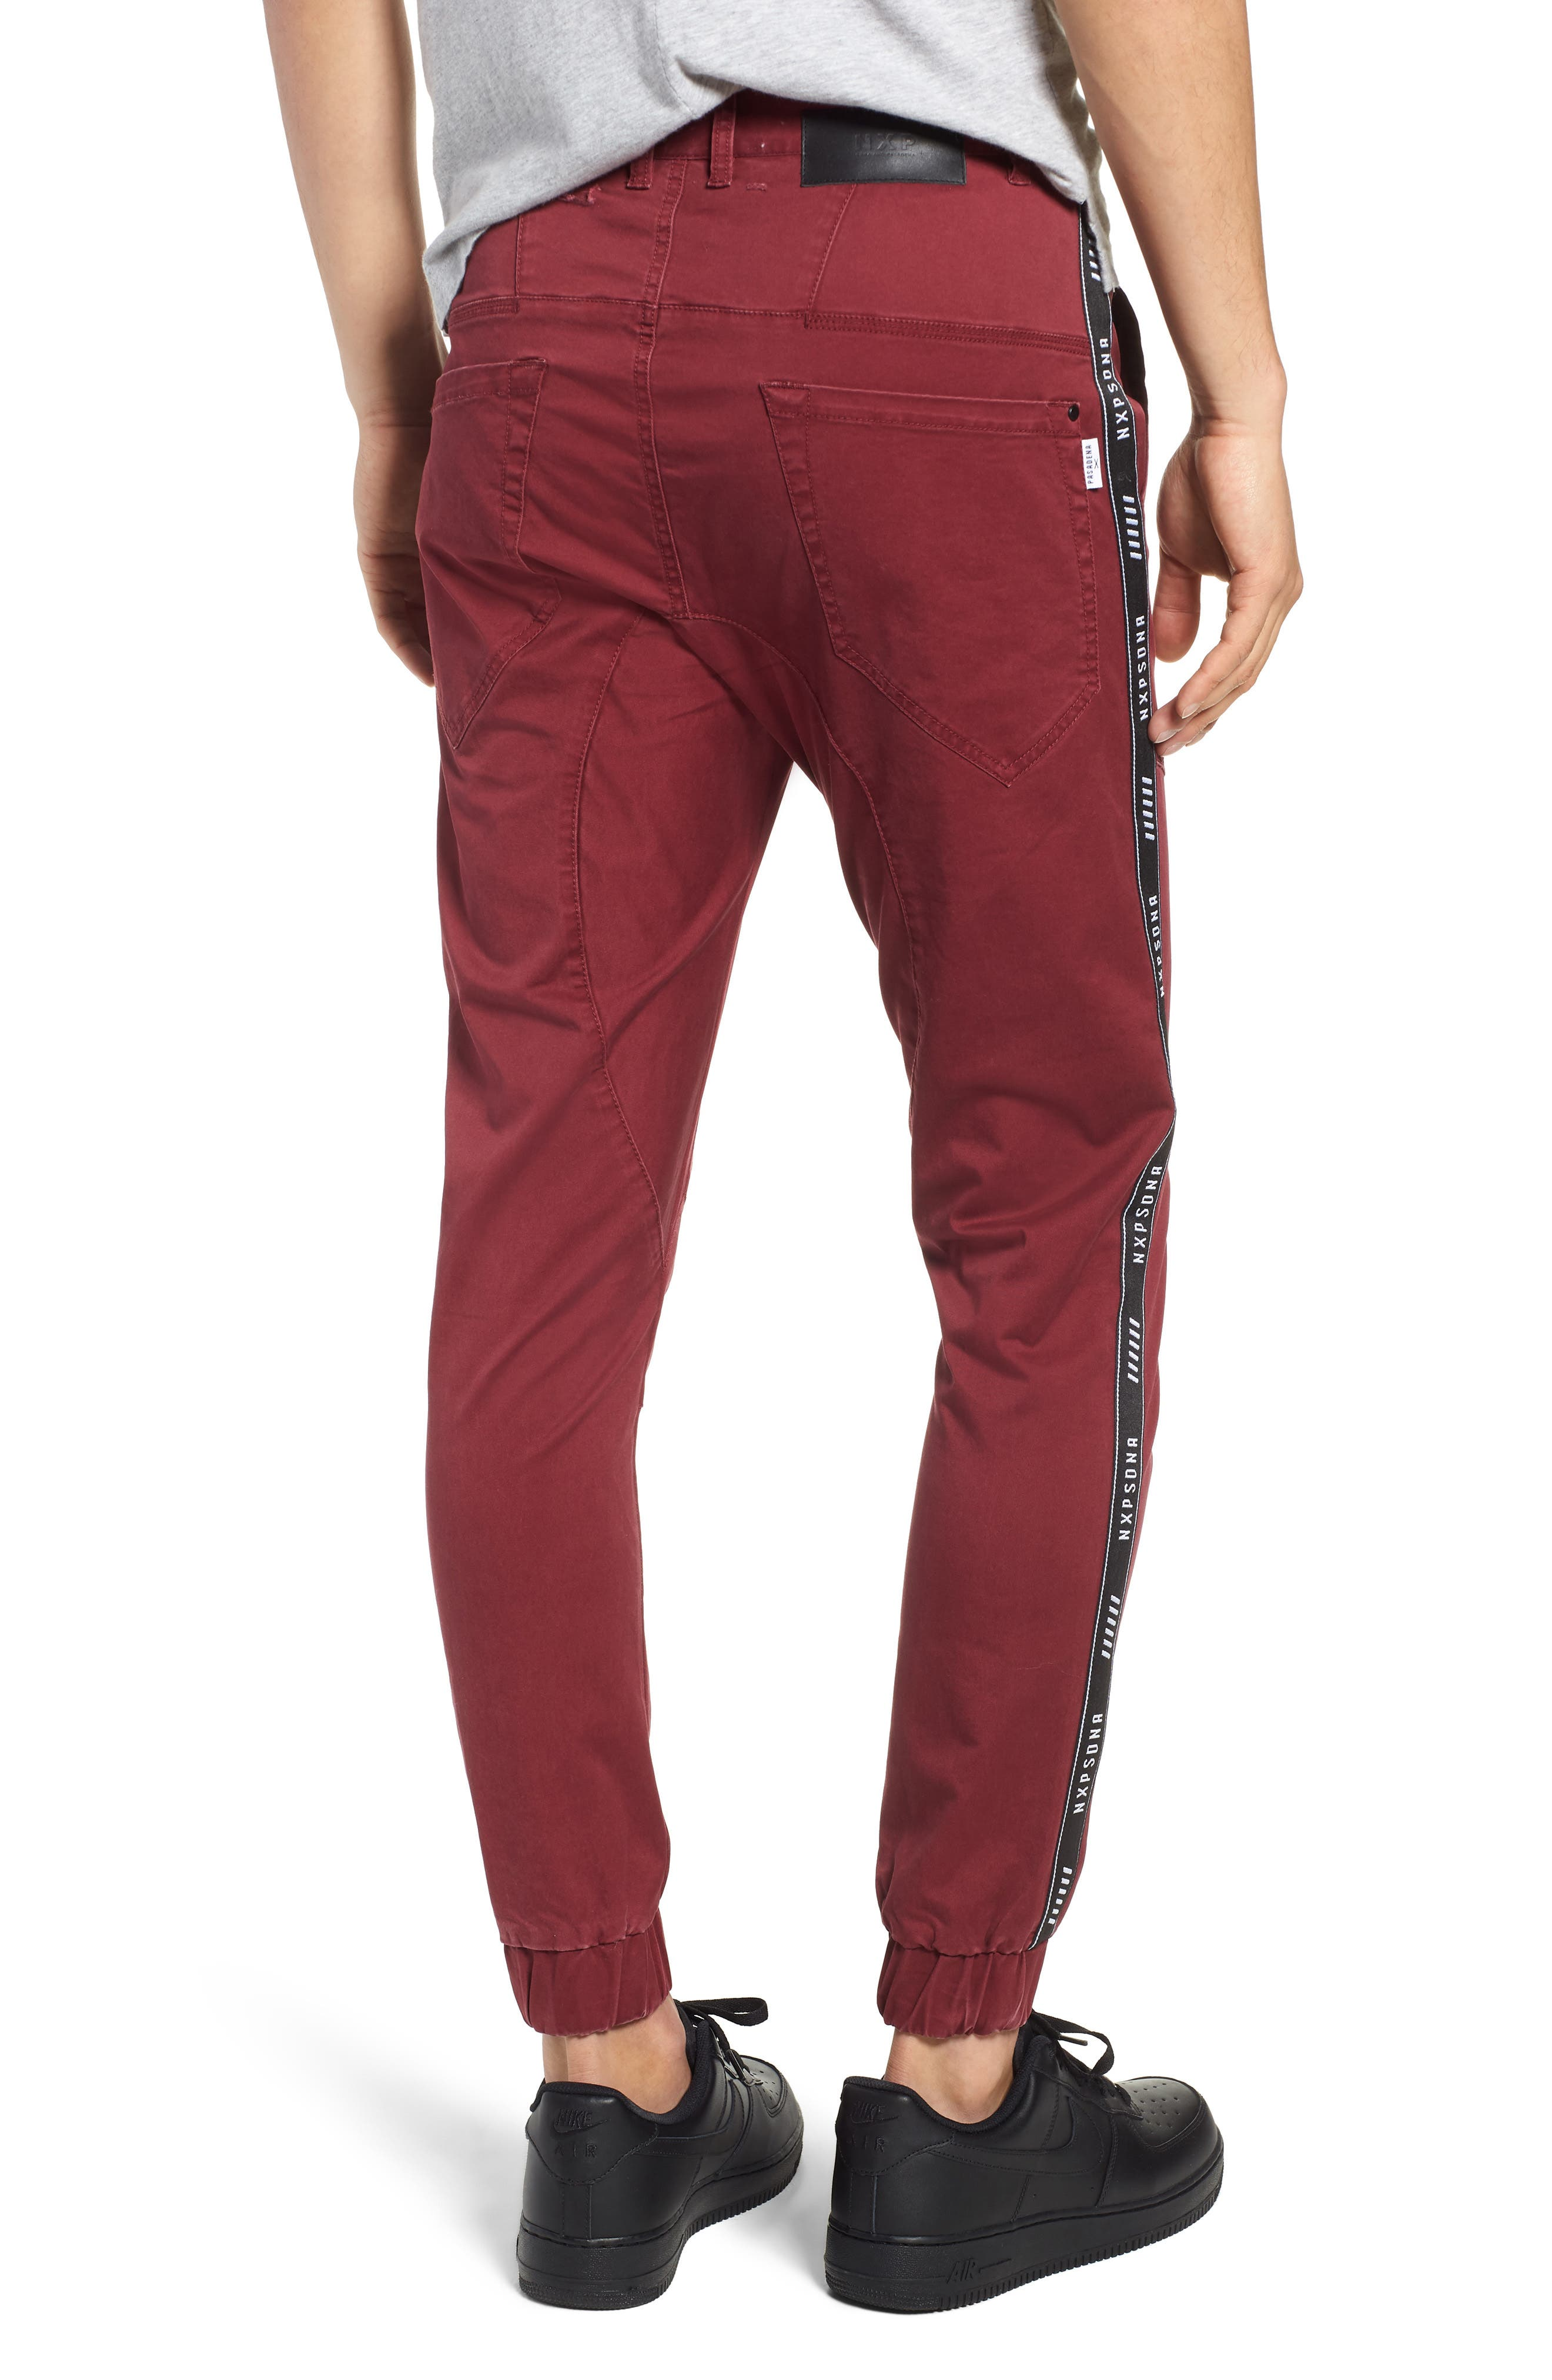 Firebrand Taped Chinos,                             Alternate thumbnail 2, color,                             BORDEAUX